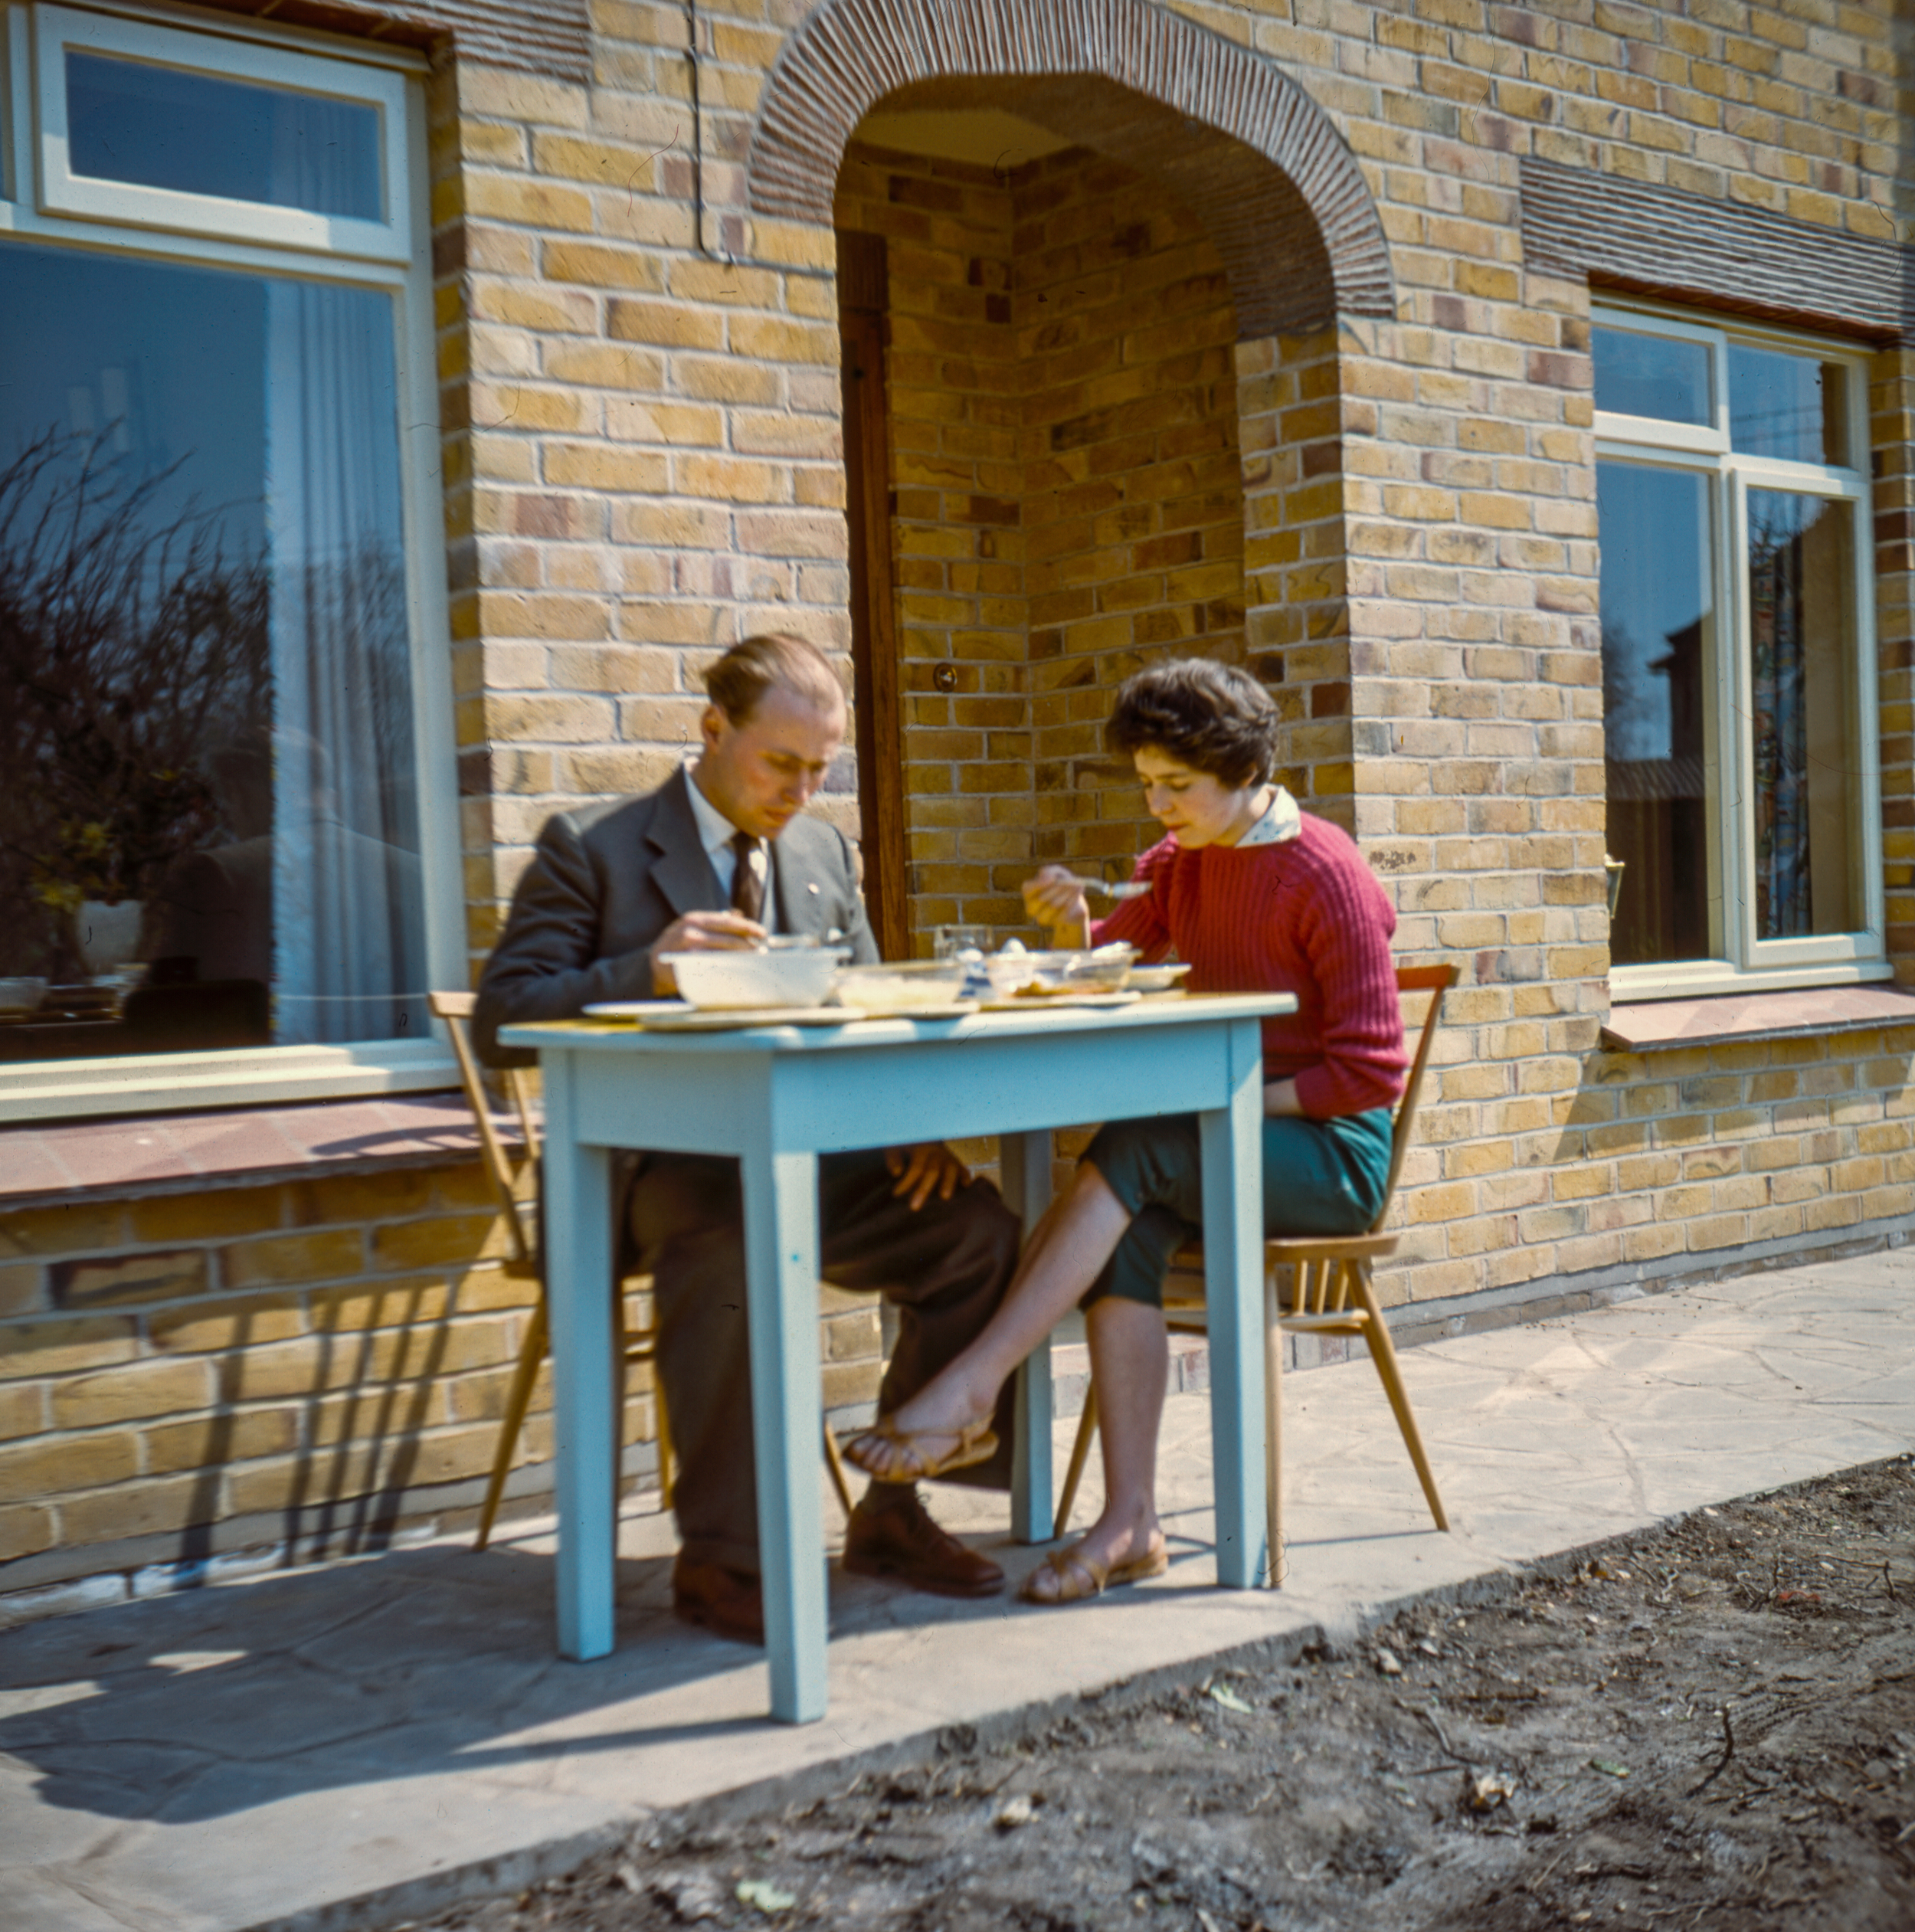 Cornwall Lunch on the Patio - St. Ives - April 1958